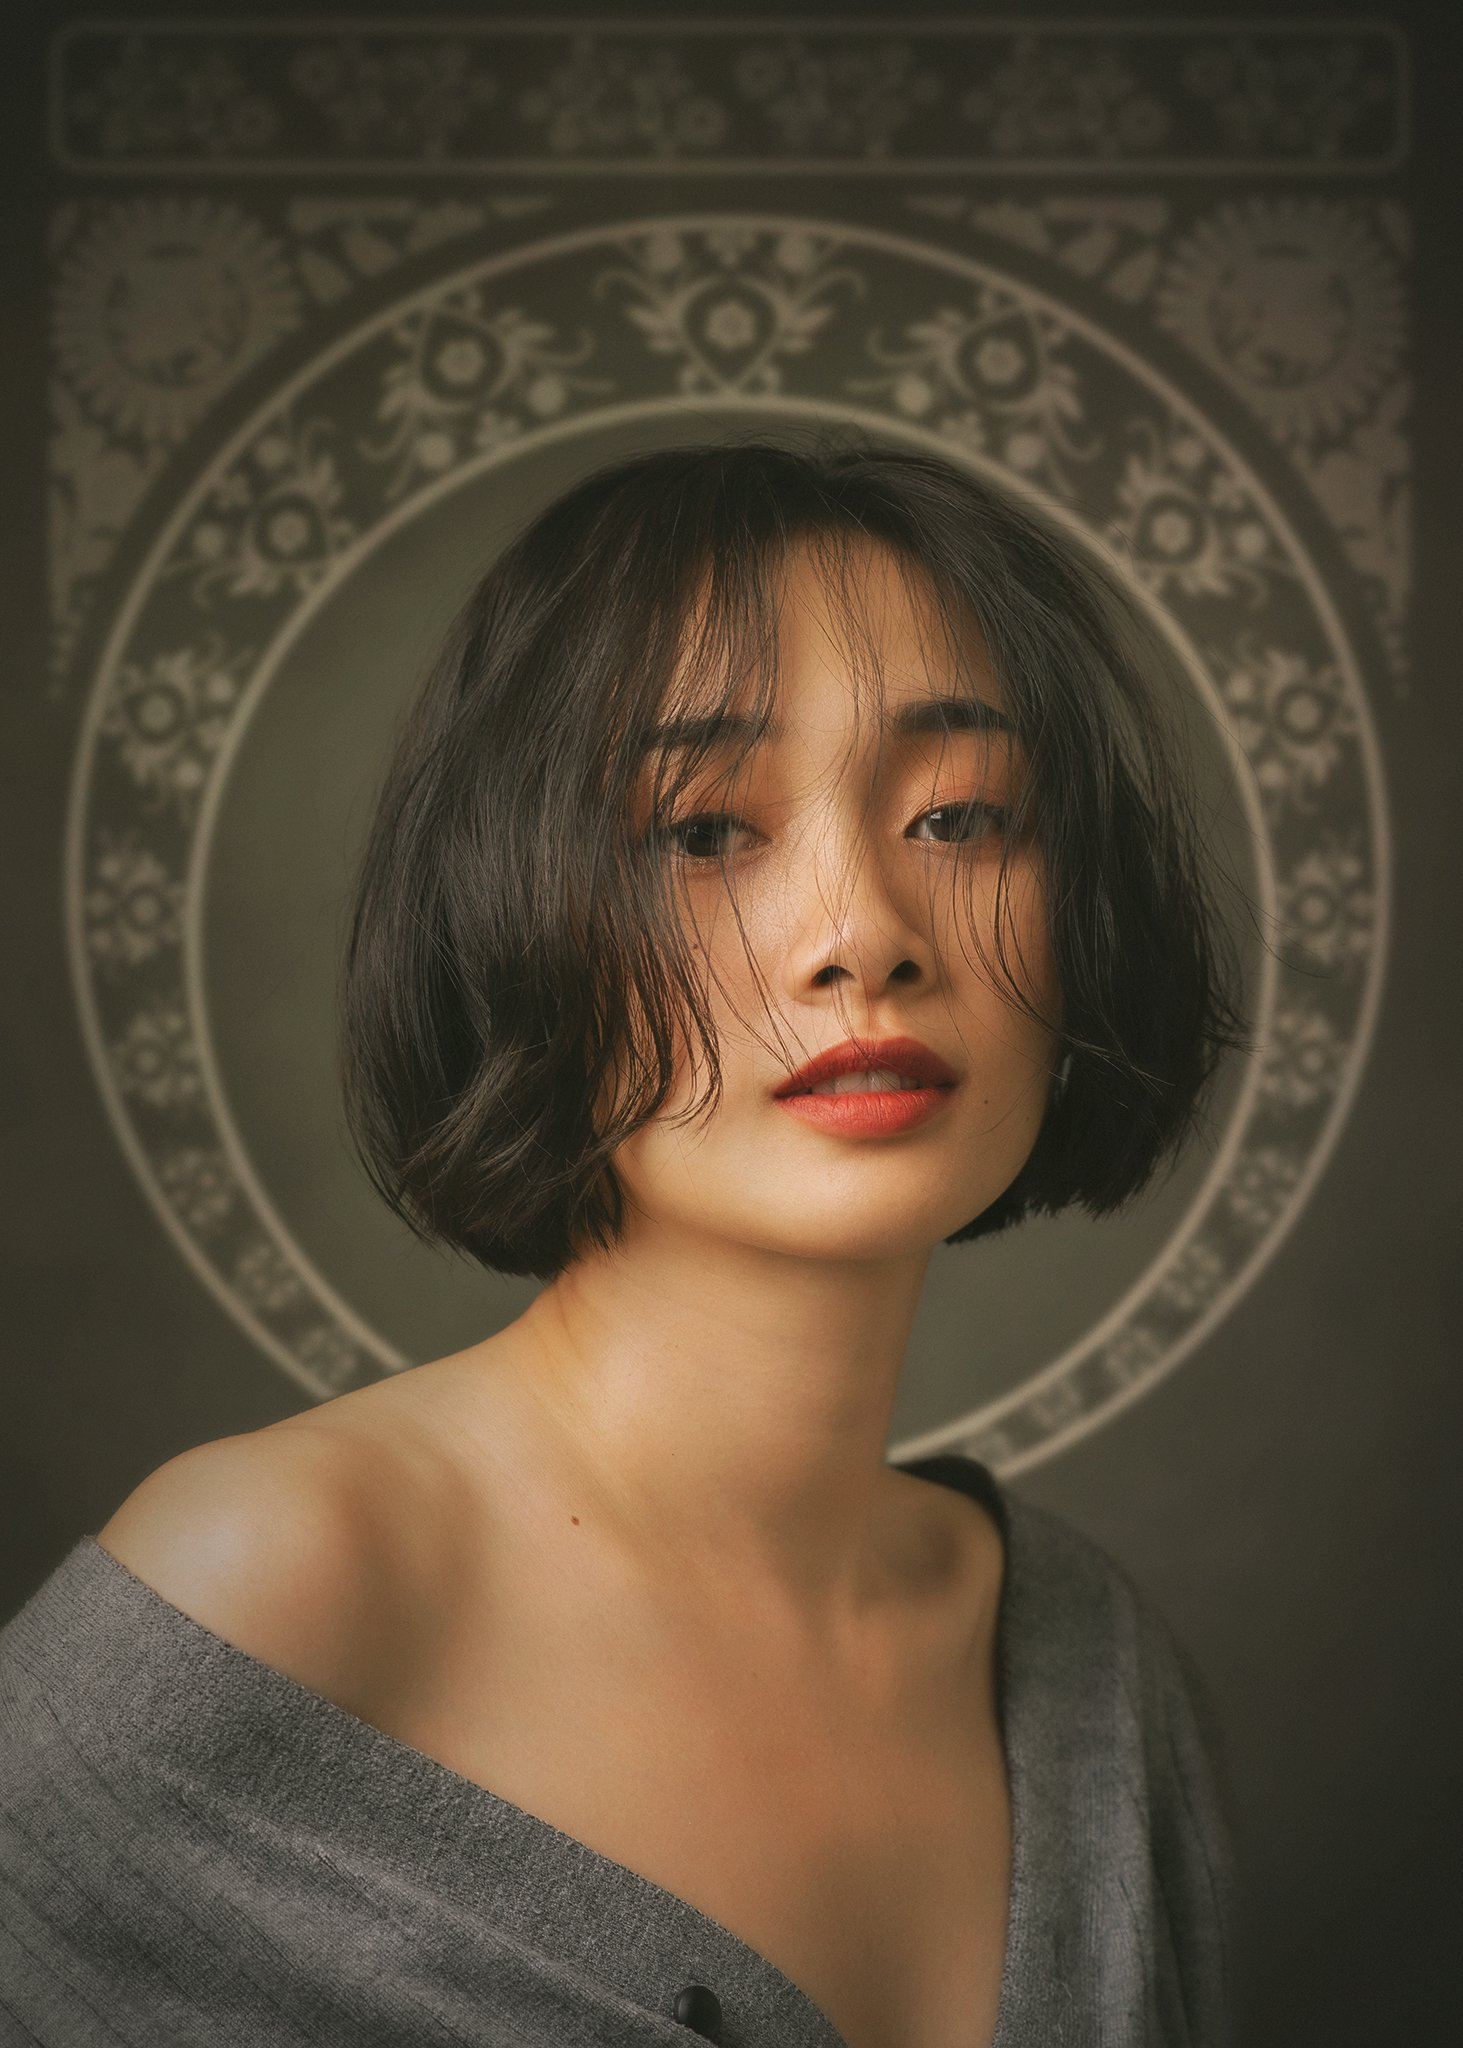 portrait, female, woman, girl, asian, vietnam, vietnamese, young, face, beauty, glamour, studio, eyes, short hair, hairstyle. staged, classic, nouveau, Hoang Viet Nguyen